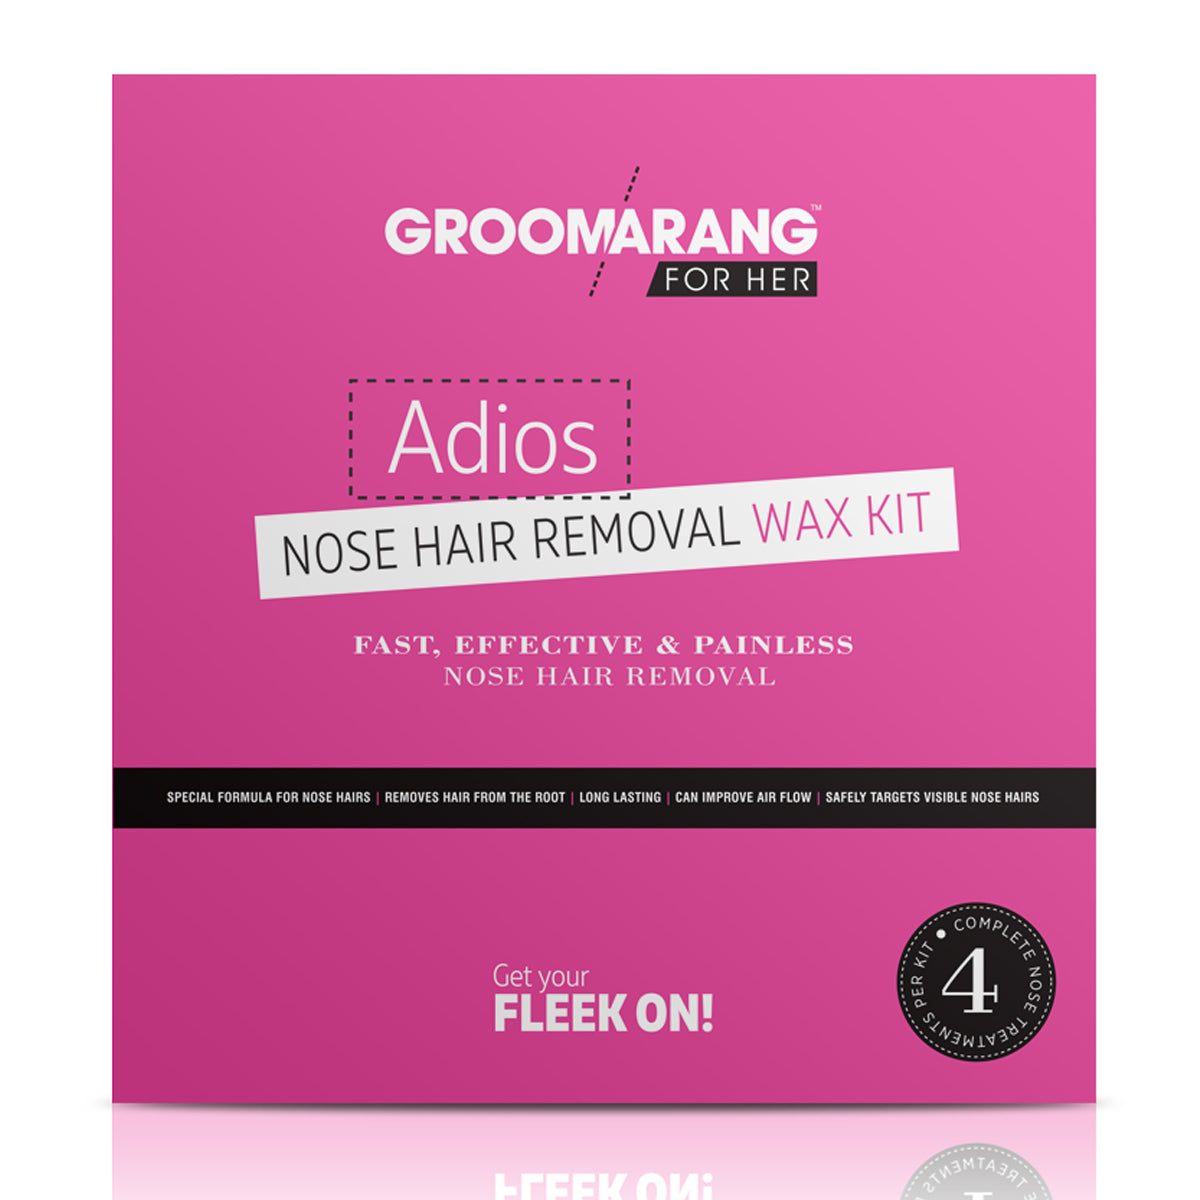 Groomarang For Her- Adios Nose Hair Removal Wax Kit For Her, Waxing Kits & Supplies - Image 1